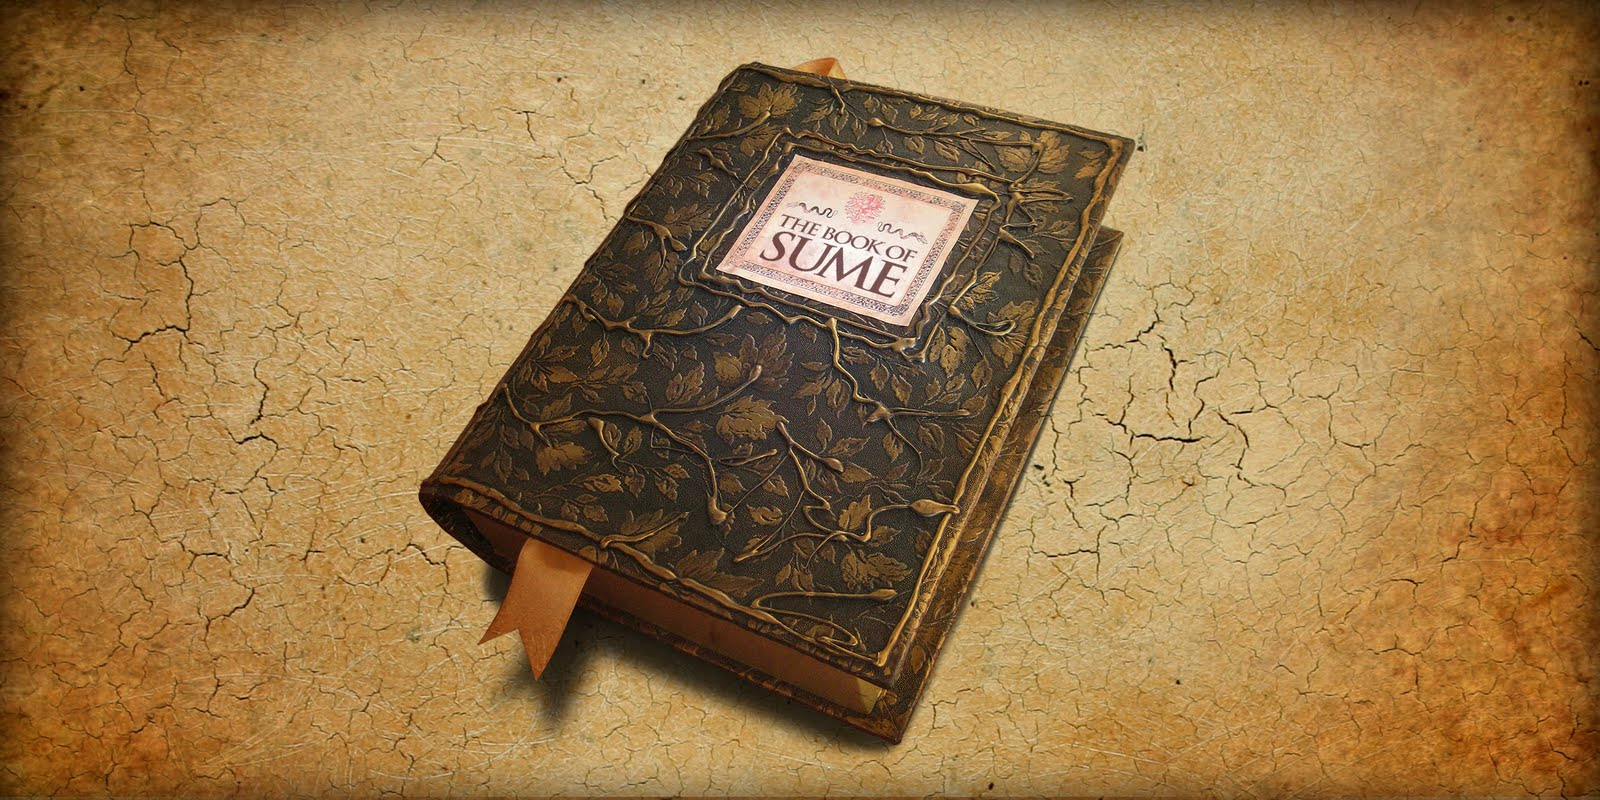 Book of Sume